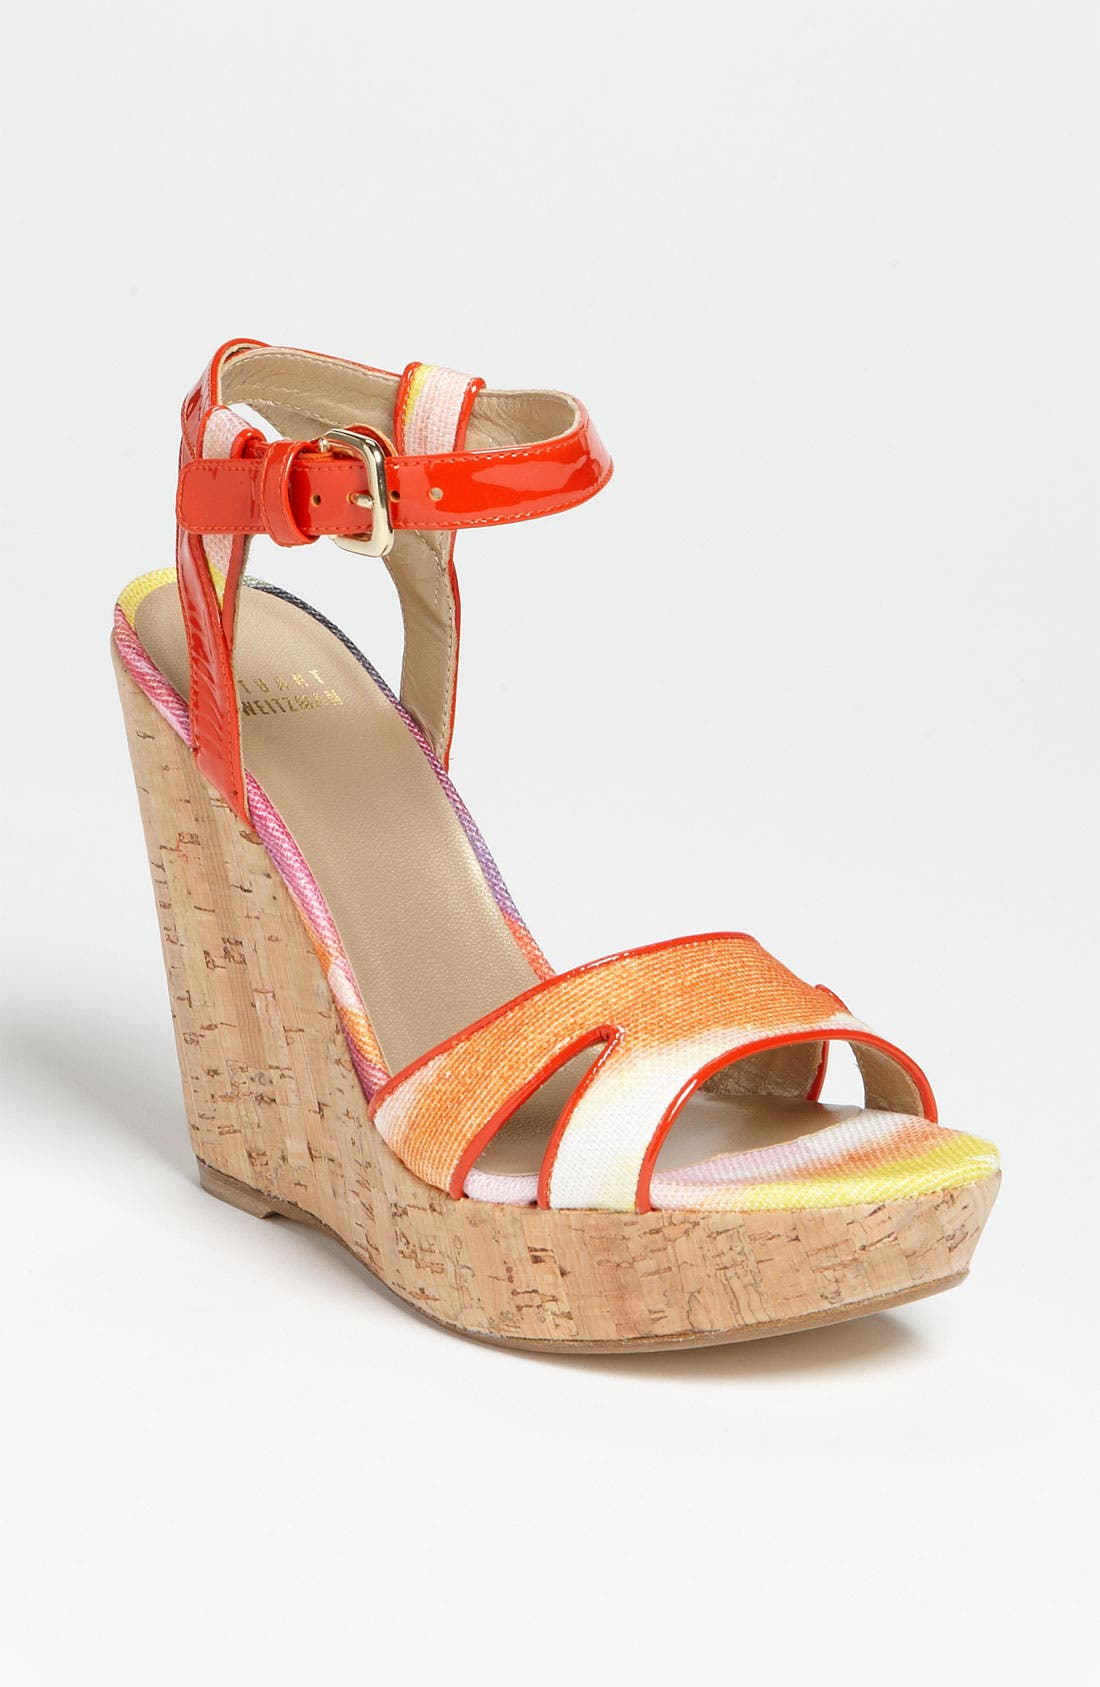 Alternate Image 1 Selected - Stuart Weitzman 'Midair' Wedge Sandal